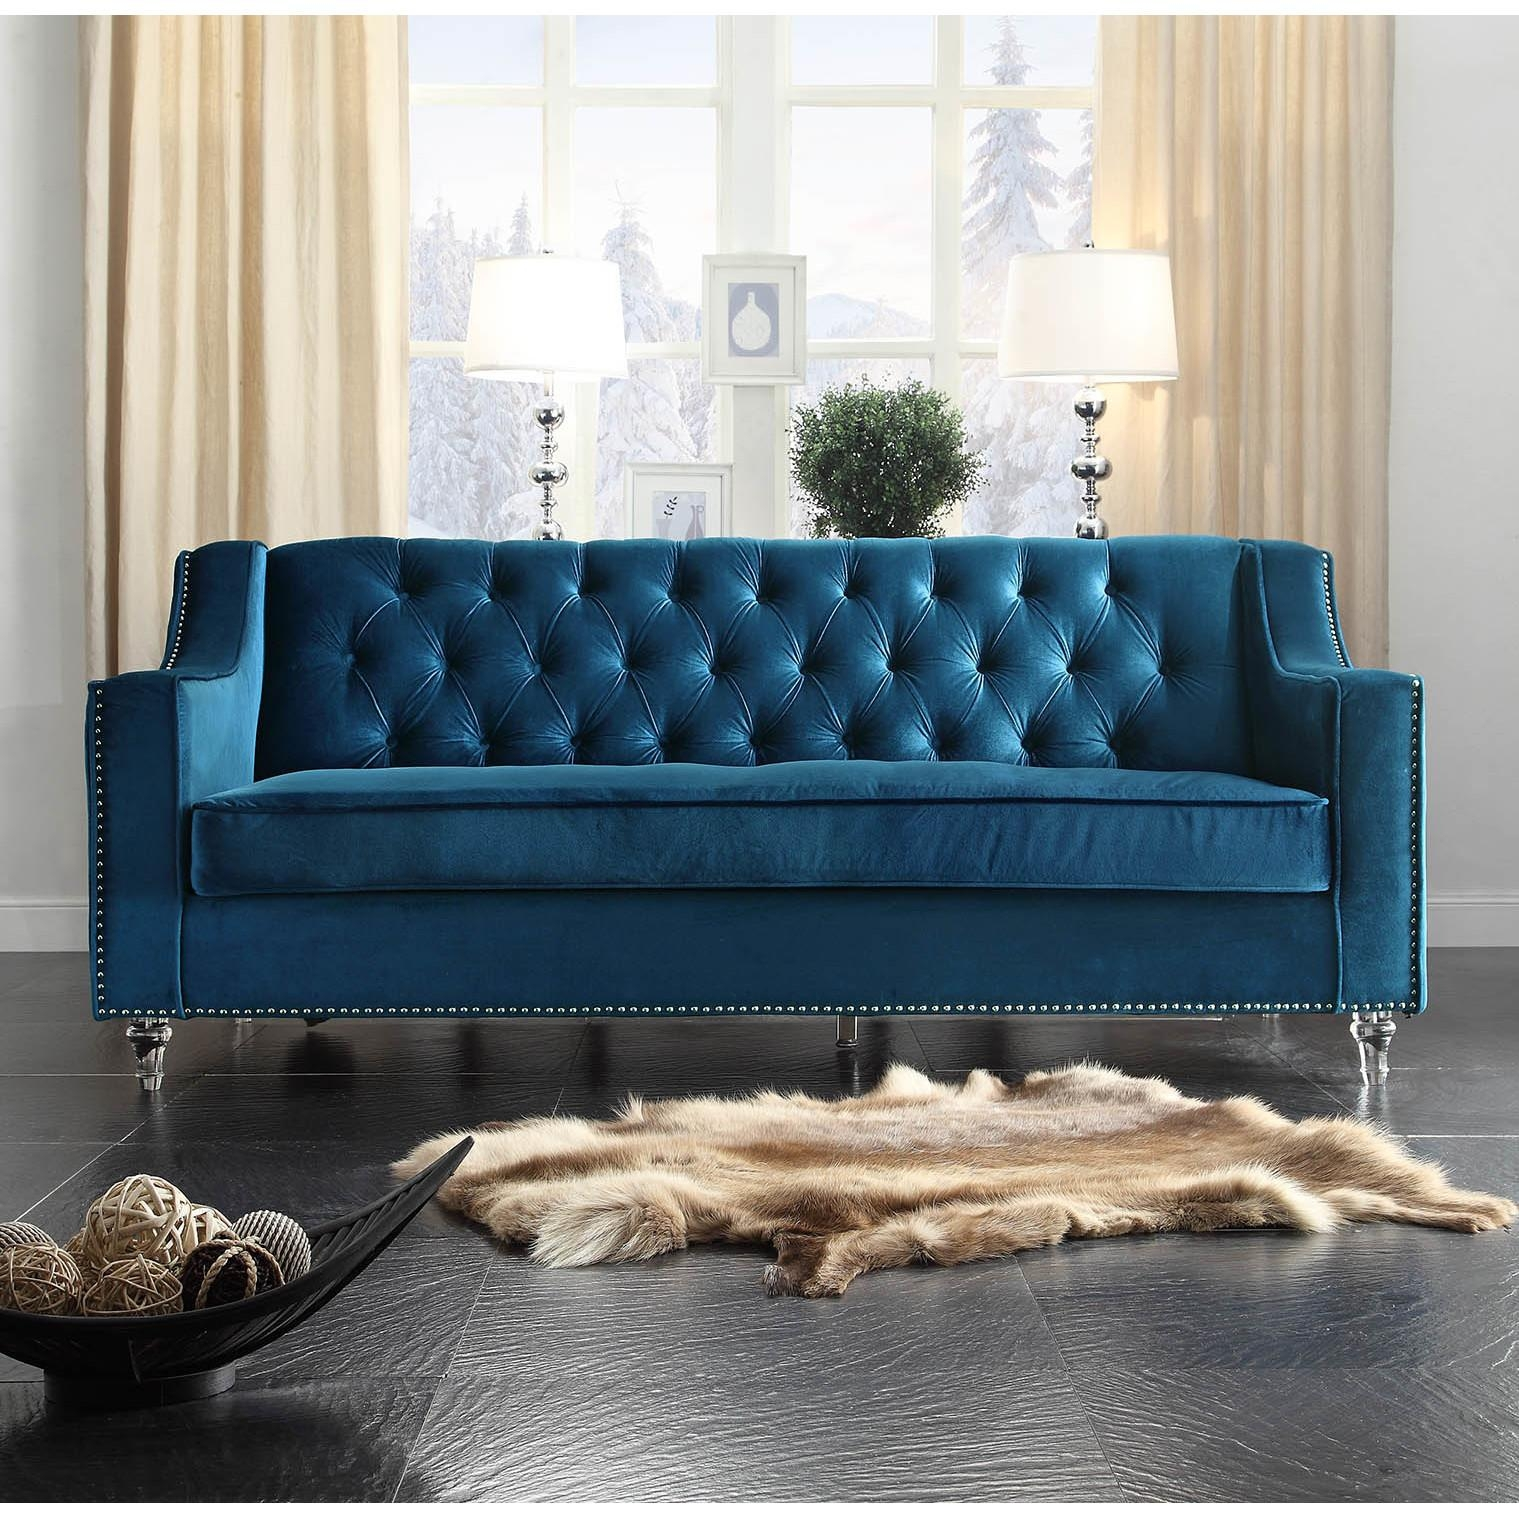 Blue Velvet Tufted Sofa | Tehranmix Decoration With Regard To Blue Velvet Tufted Sofas (Image 6 of 20)